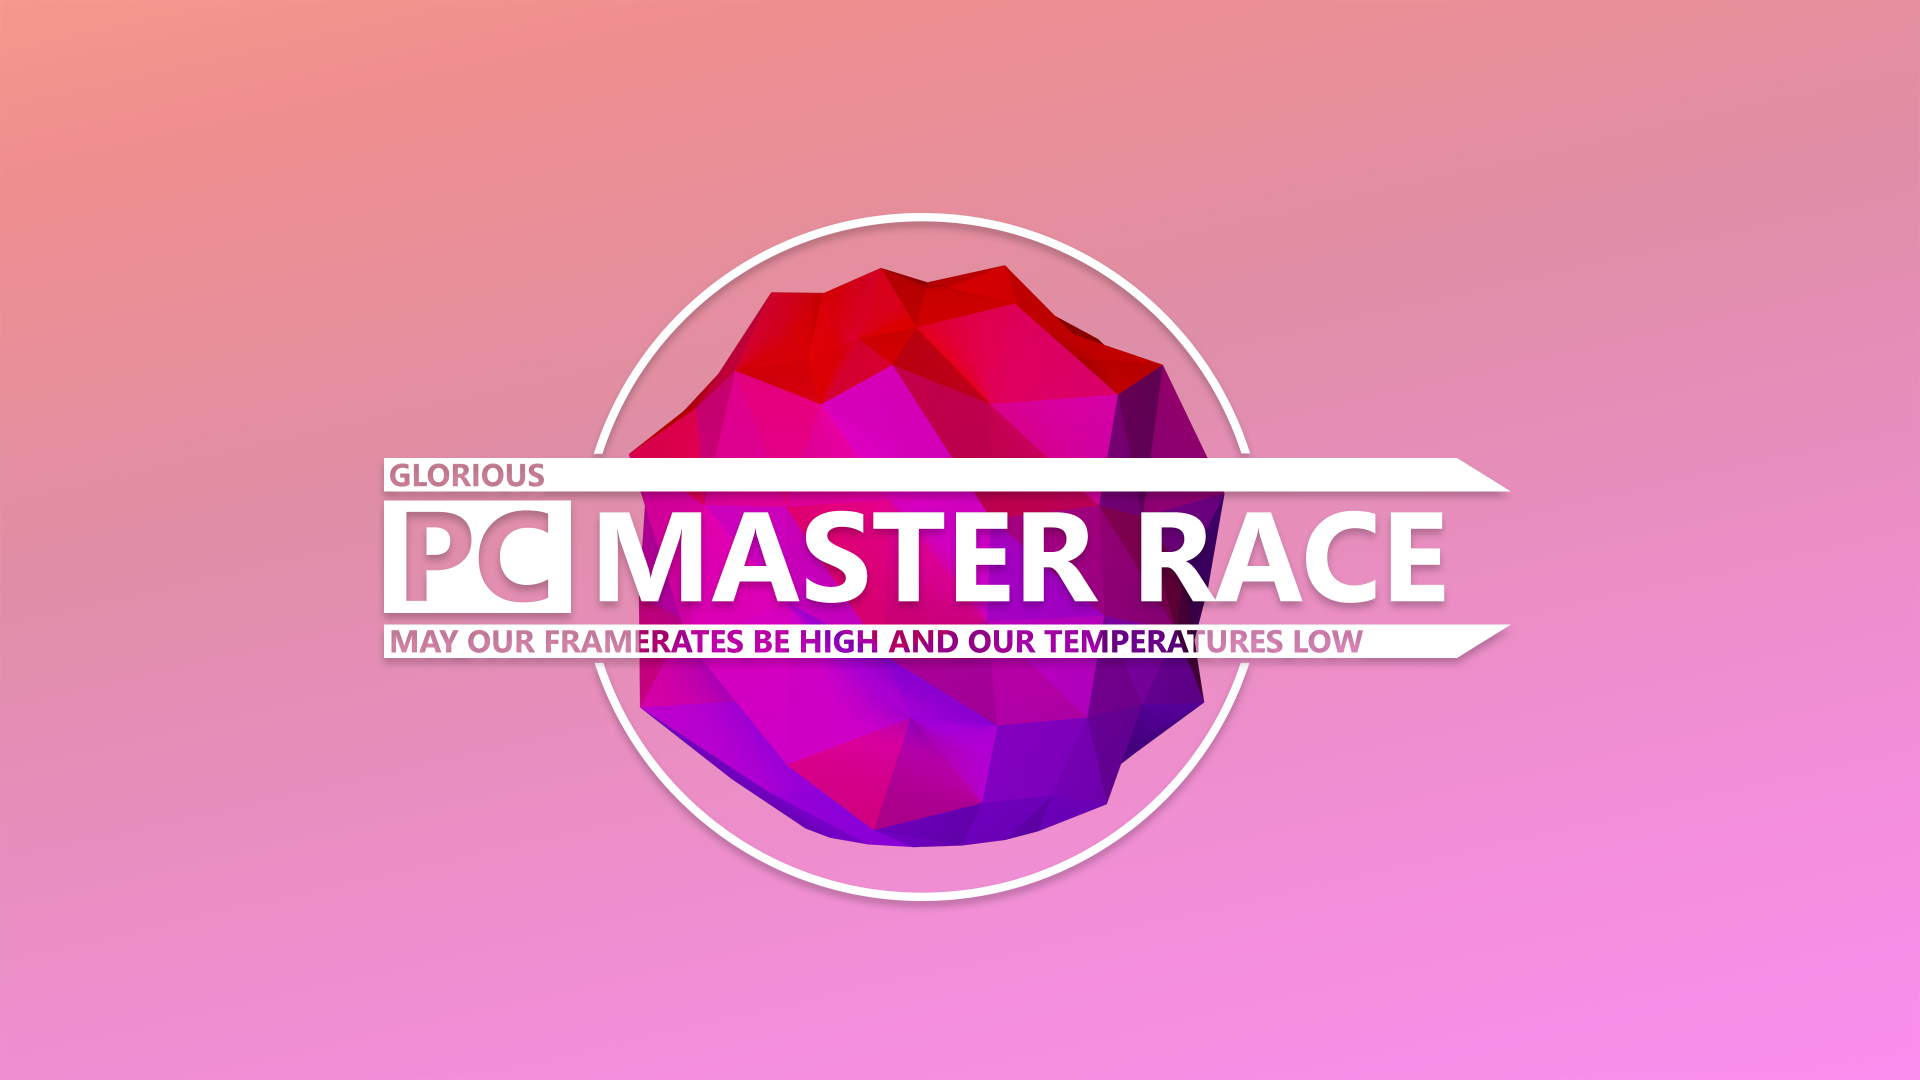 pc master race wallpaper - photo #24